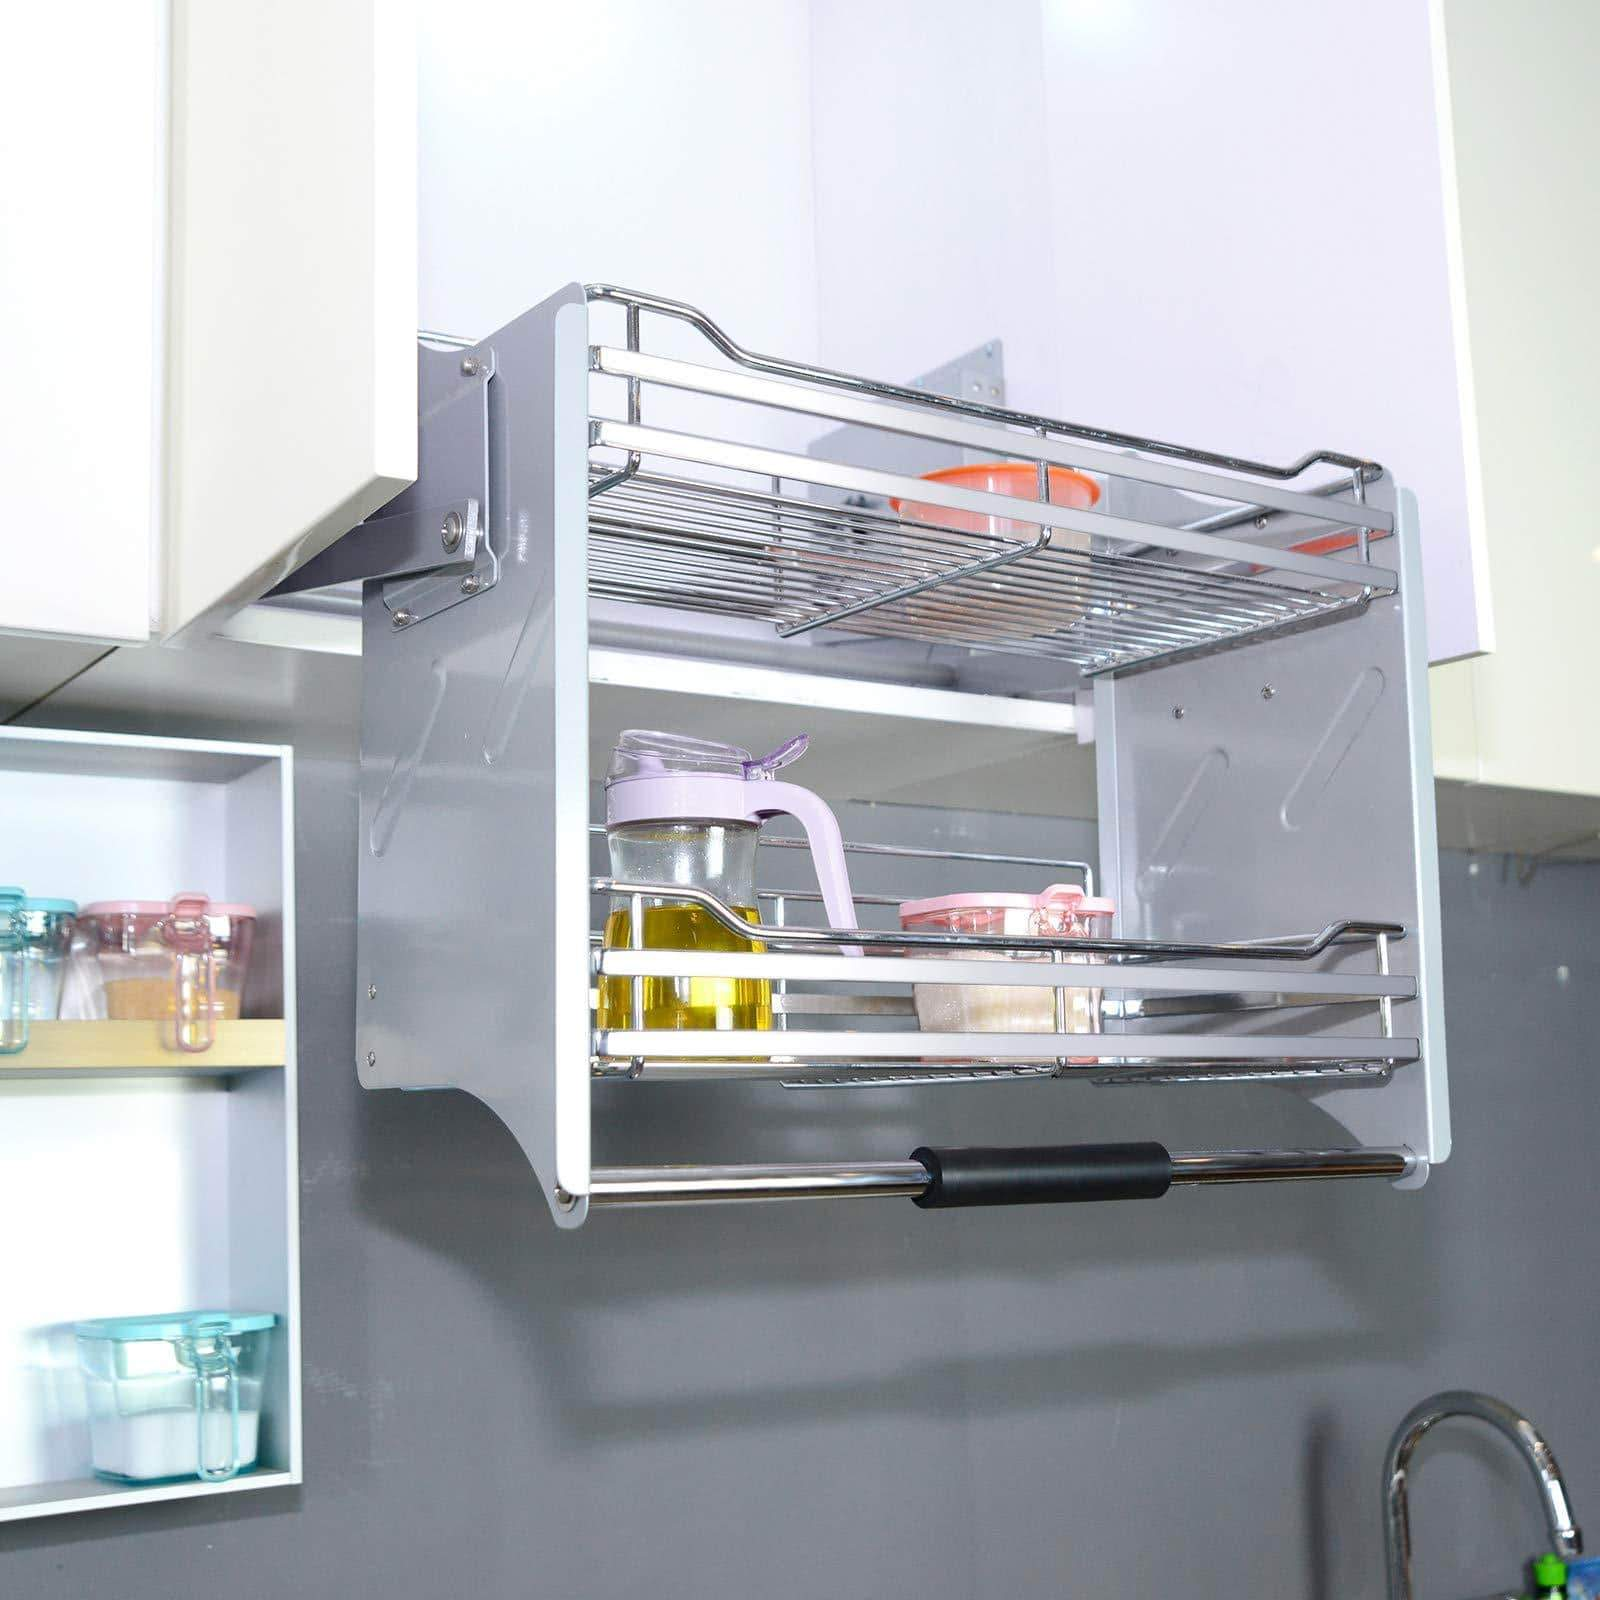 Budget pull down two tier shelf shelves cabinet for 600mm width cupboards steel wall unit storage organizer system kitchen